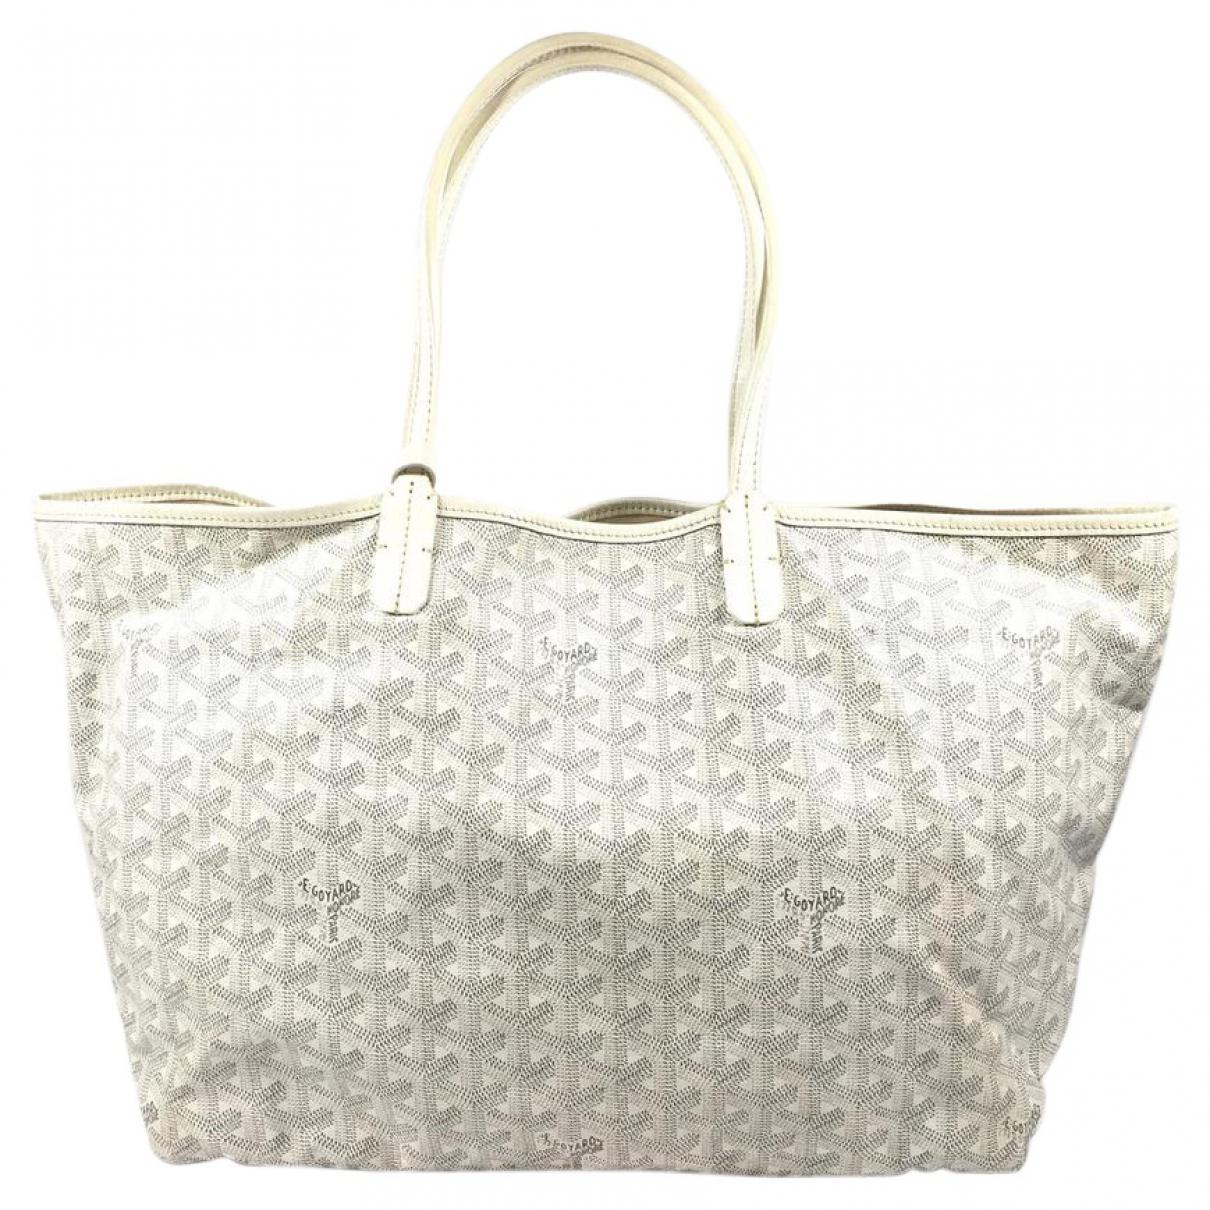 Goyard Pre-owned - Cloth handbag qMQtu